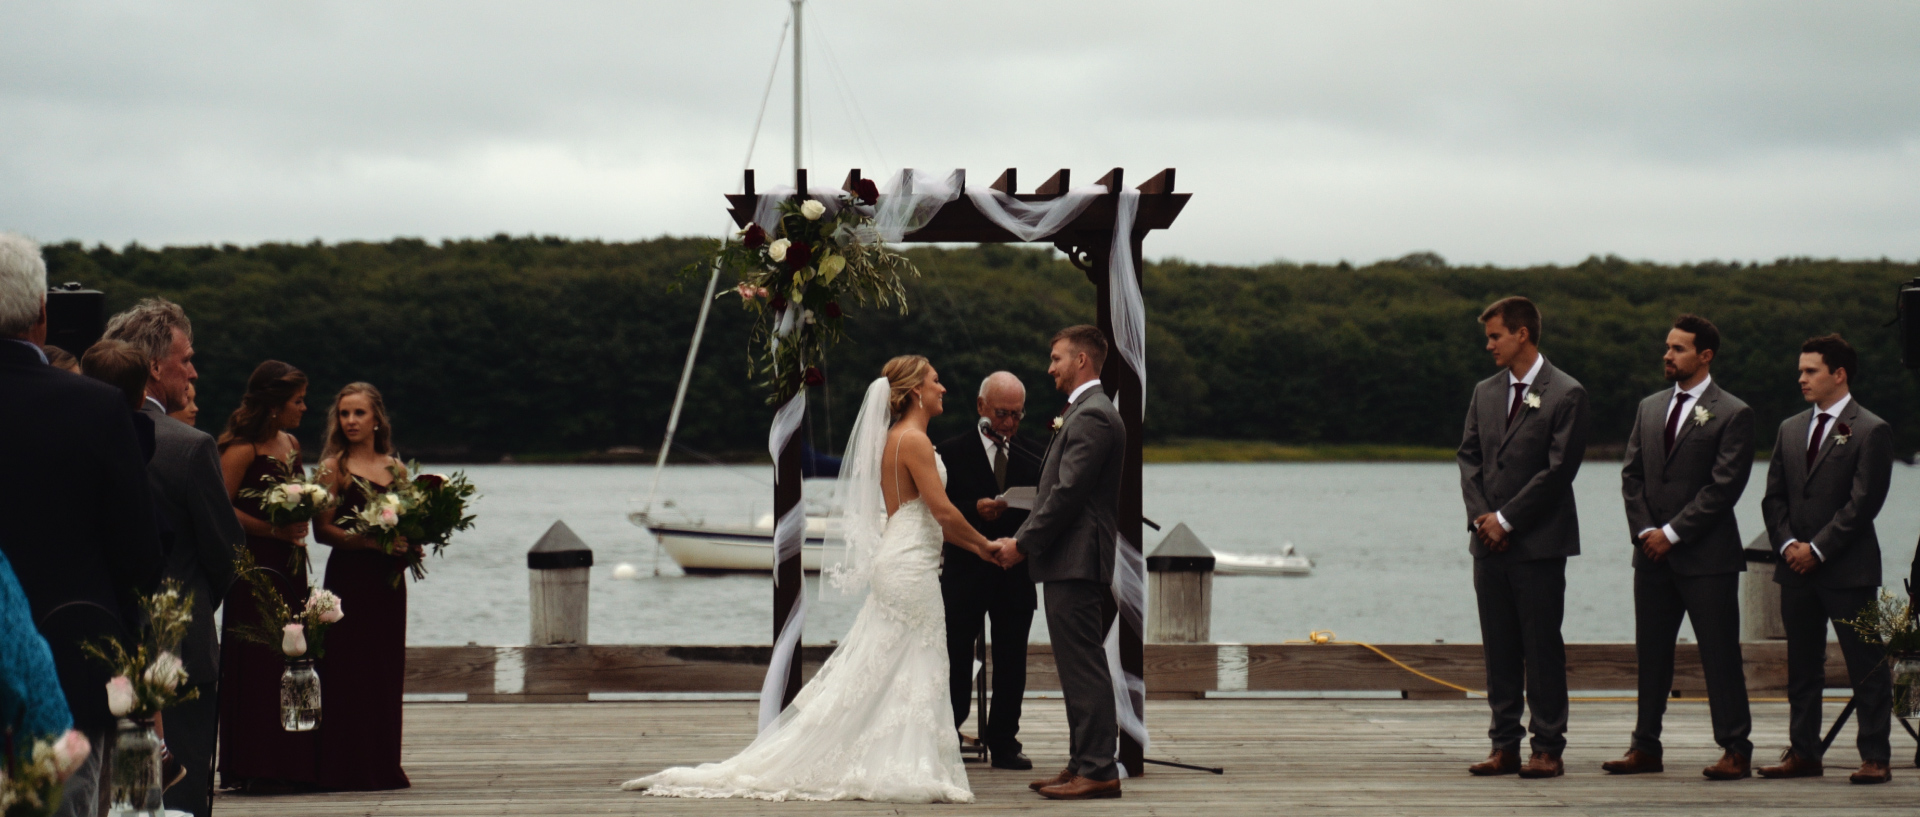 maine maritime museum bath maine wedding photography videography 22